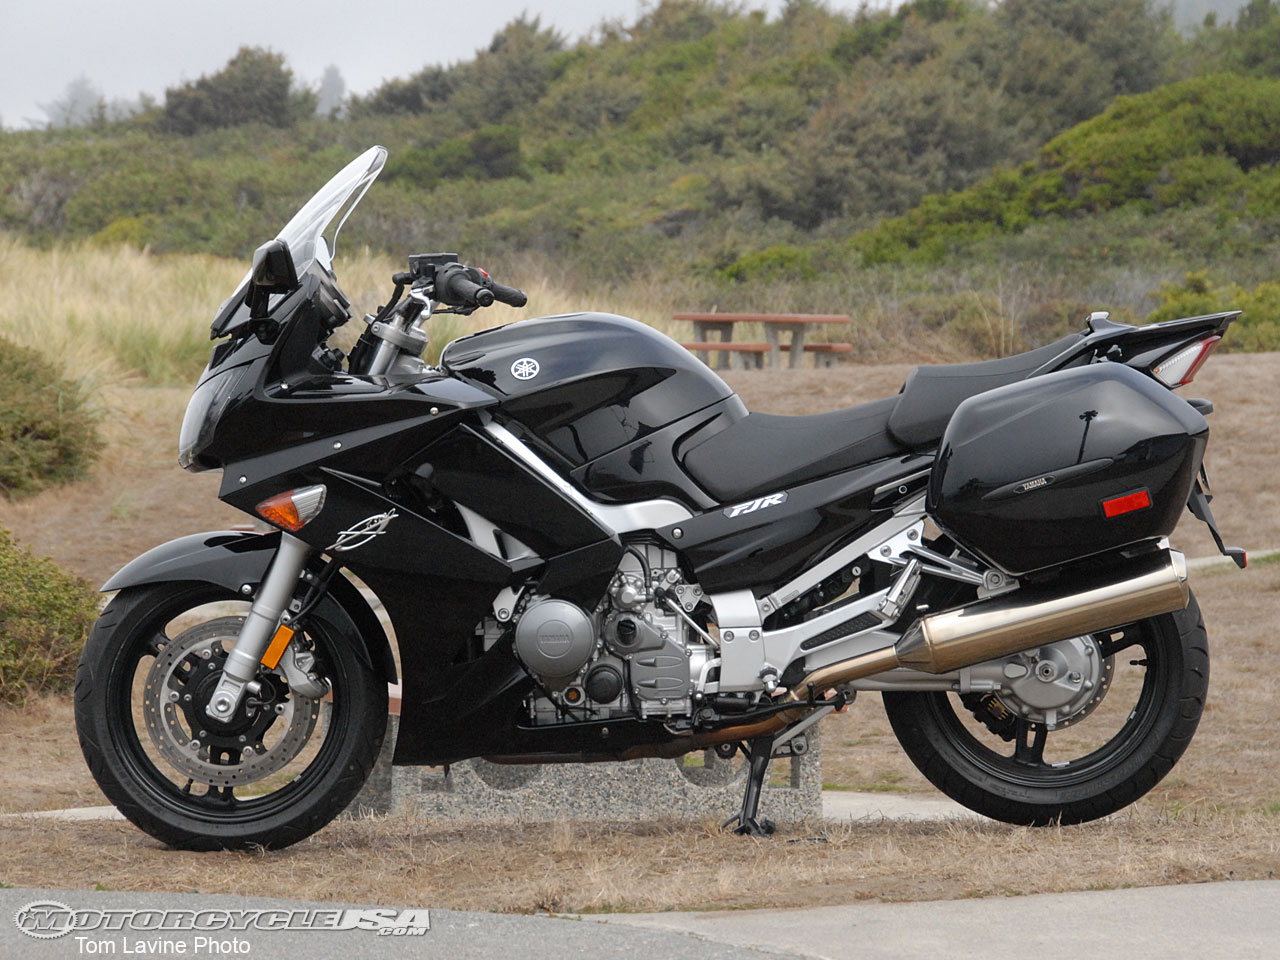 2010 yamaha fjr 1300 a pics specs and information. Black Bedroom Furniture Sets. Home Design Ideas